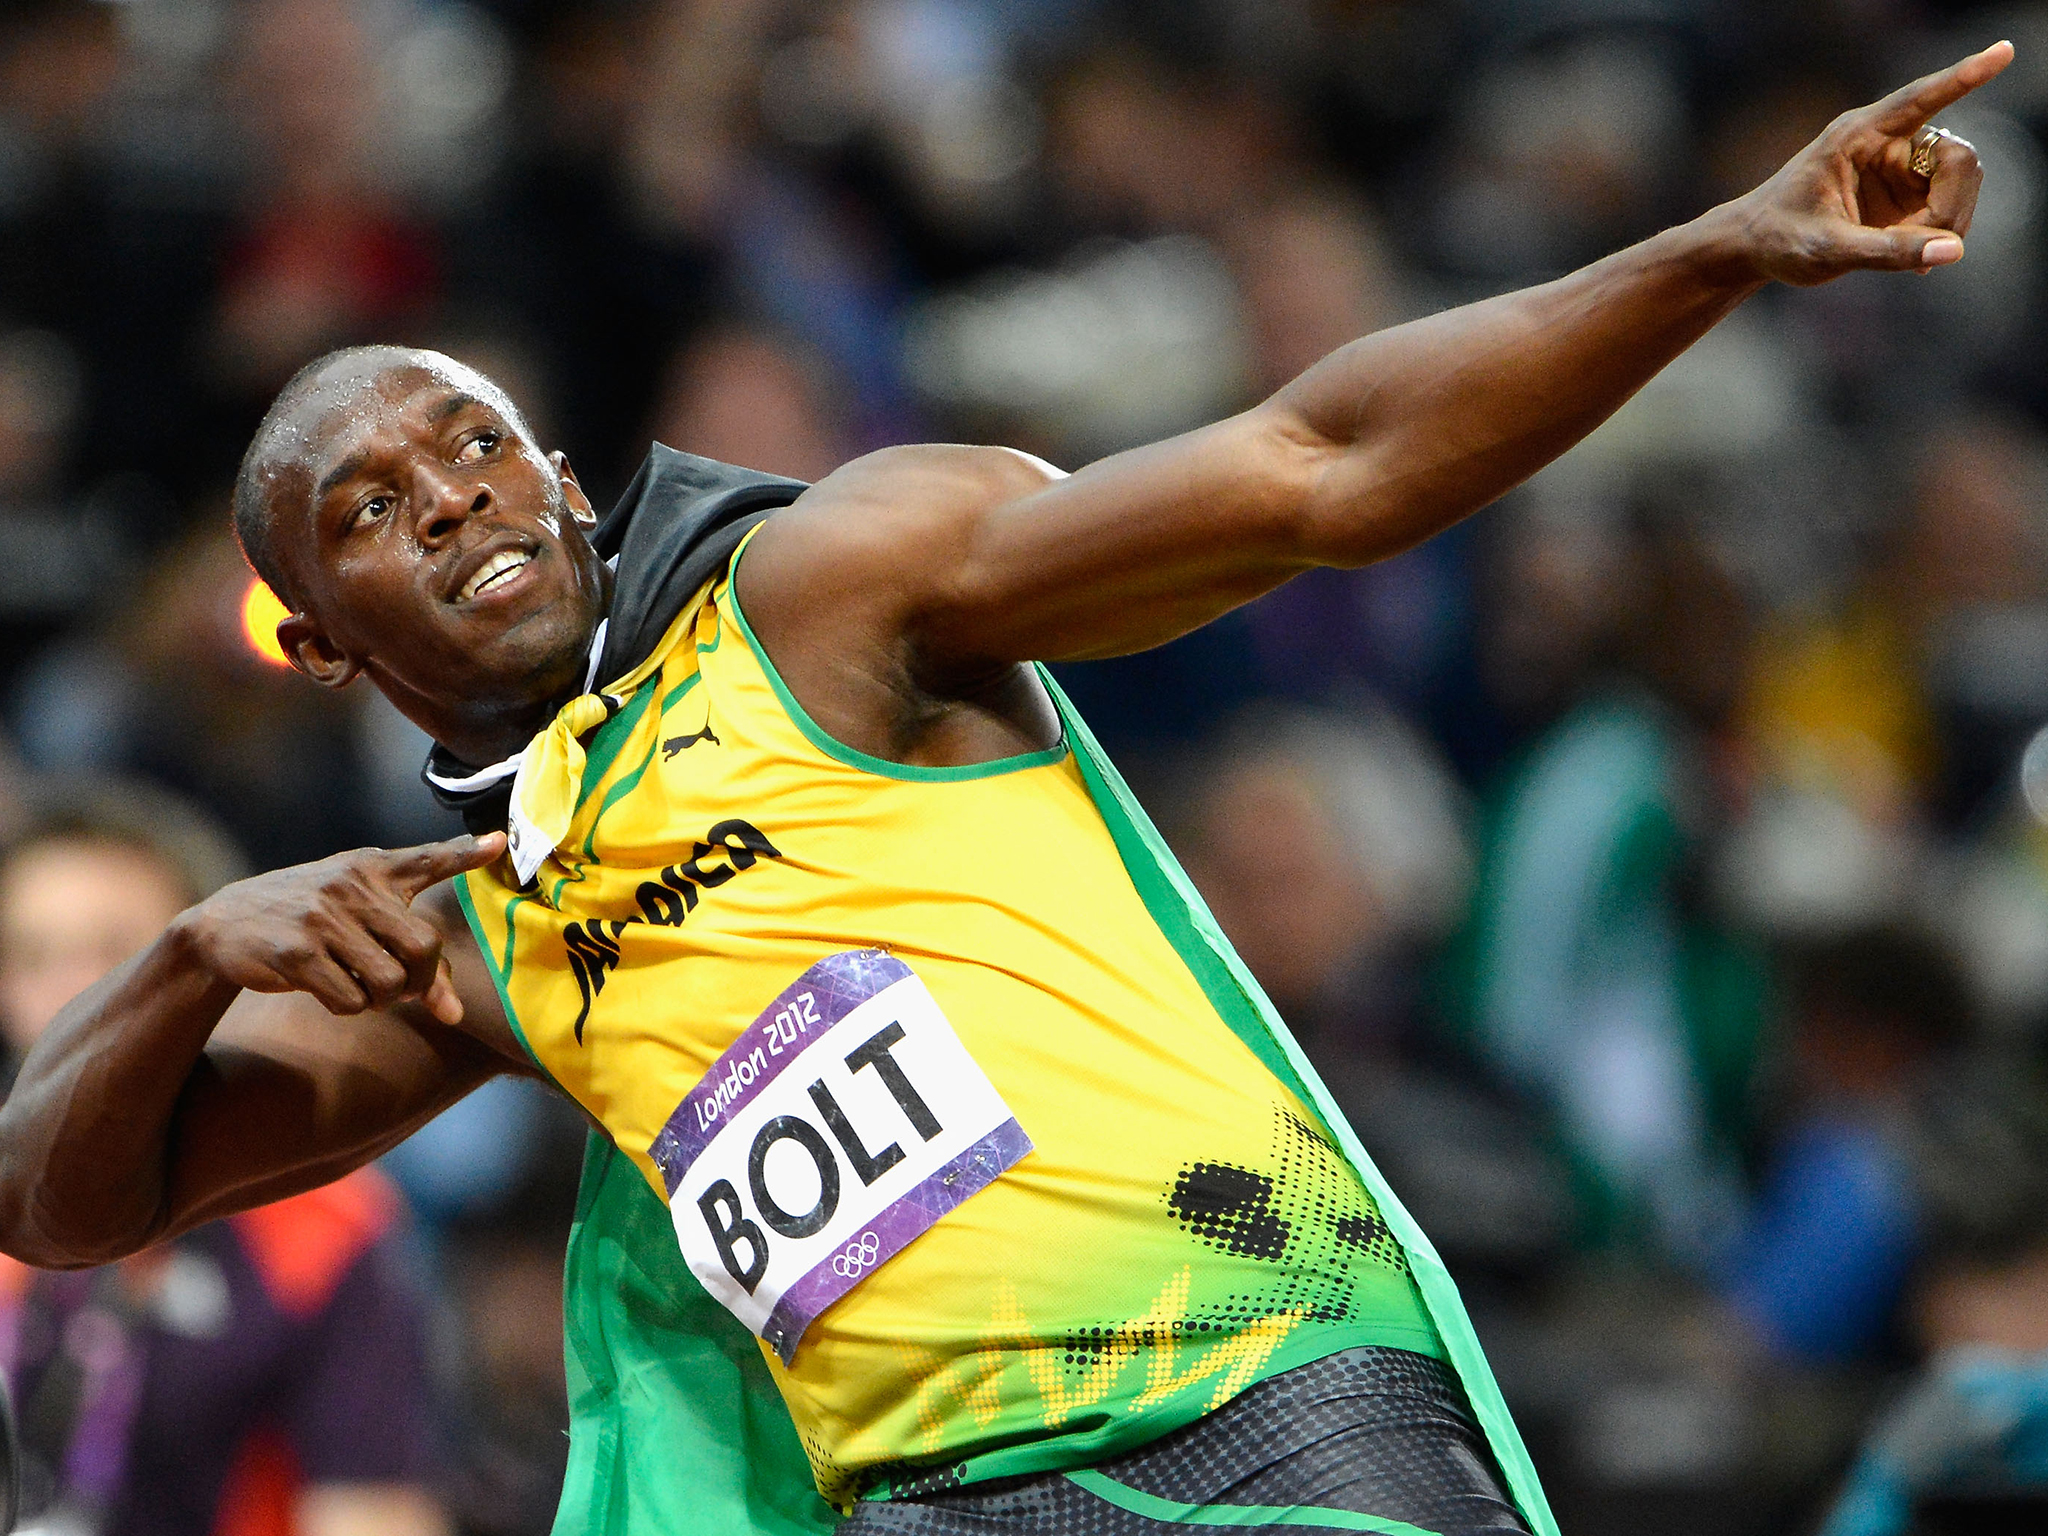 Usain Bolt is allegedly the world's worst neighbour as well as fastest man - People - News - The Independent